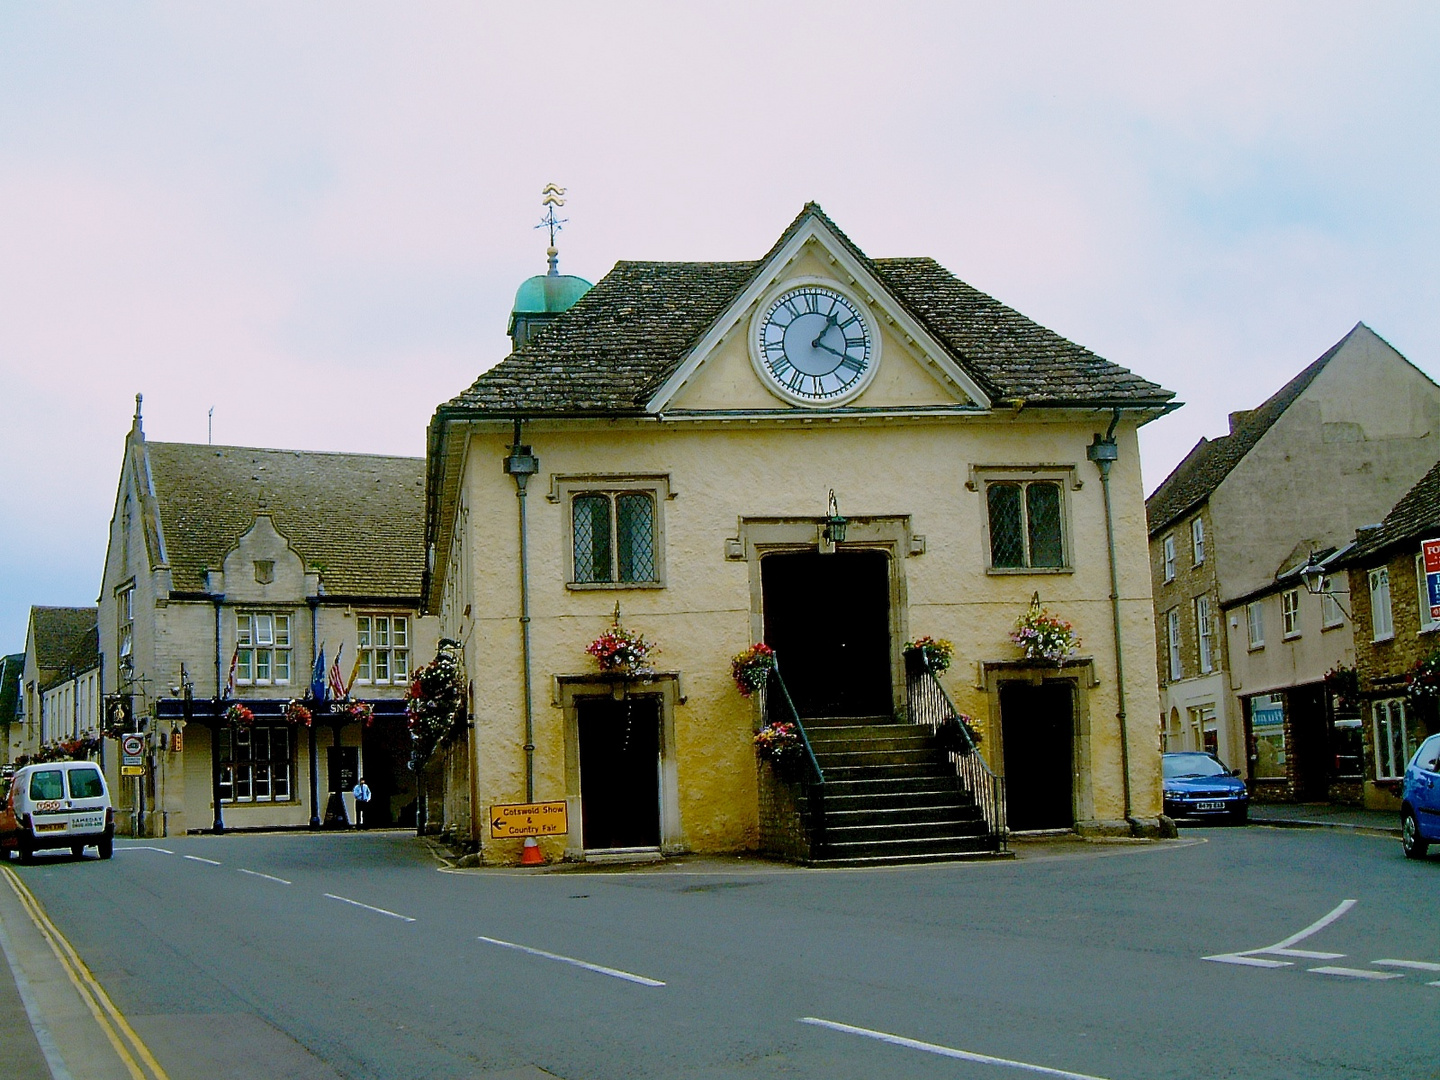 The Market House, built in 1655, Tetbury